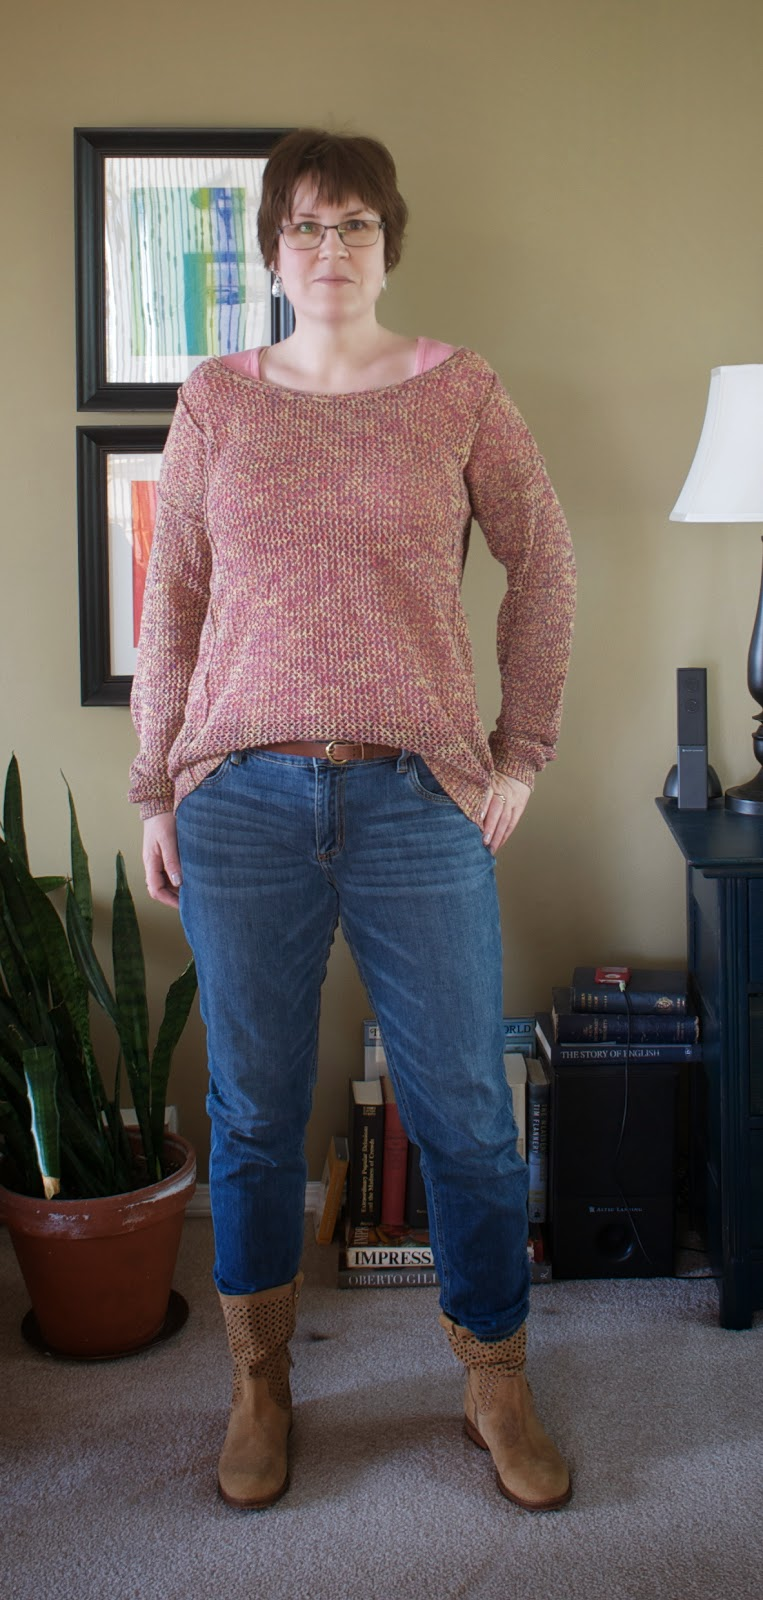 The director of awesome dressing my body shape its more of a doing my best to follow the guidelines in these pictures showing examples of my more casual styles i have mixed feelings at discovering i look better with floridaeventfo Image collections